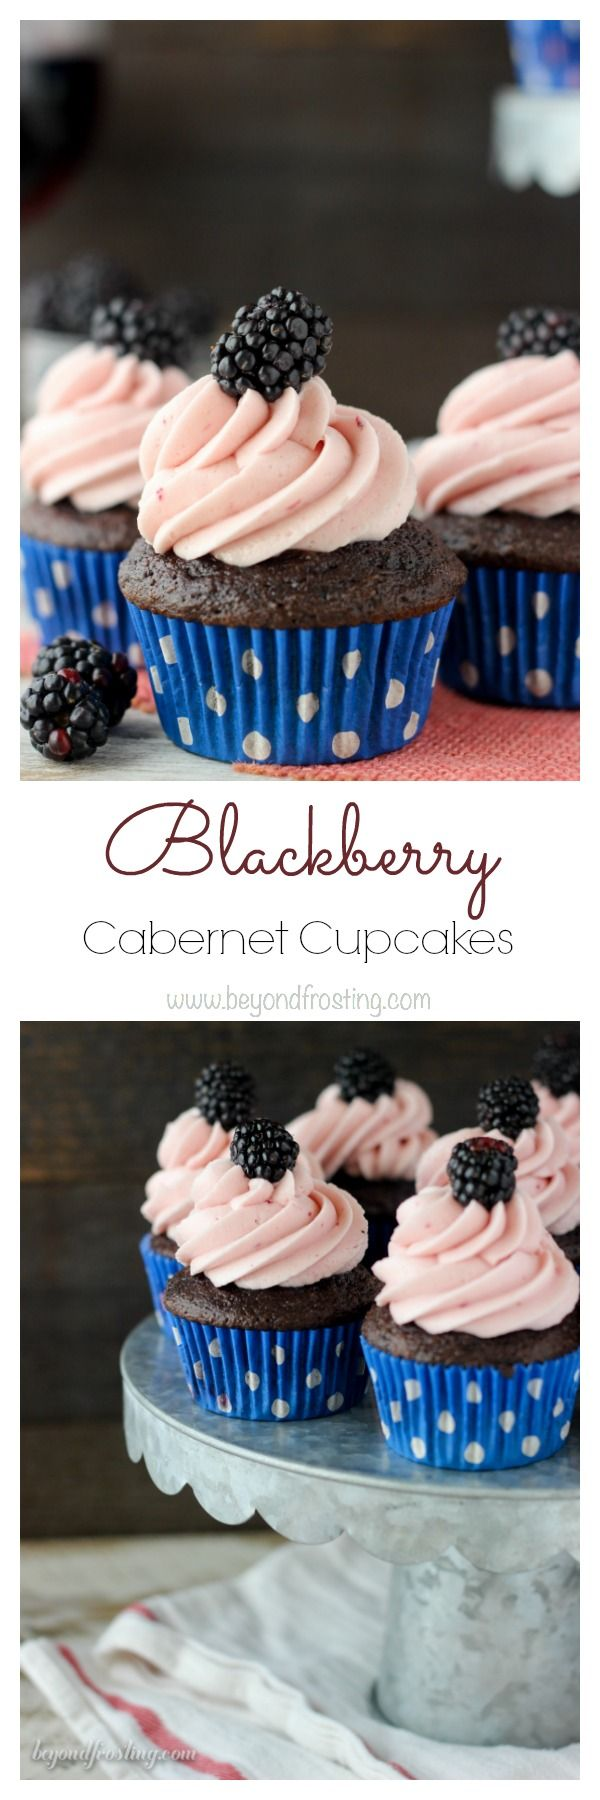 These easy Blackberry Cabernet cupcakes start with a doctored cake mix and some red wine. They are baked with fresh blackberries and topped with a luscious blackberry frosting.